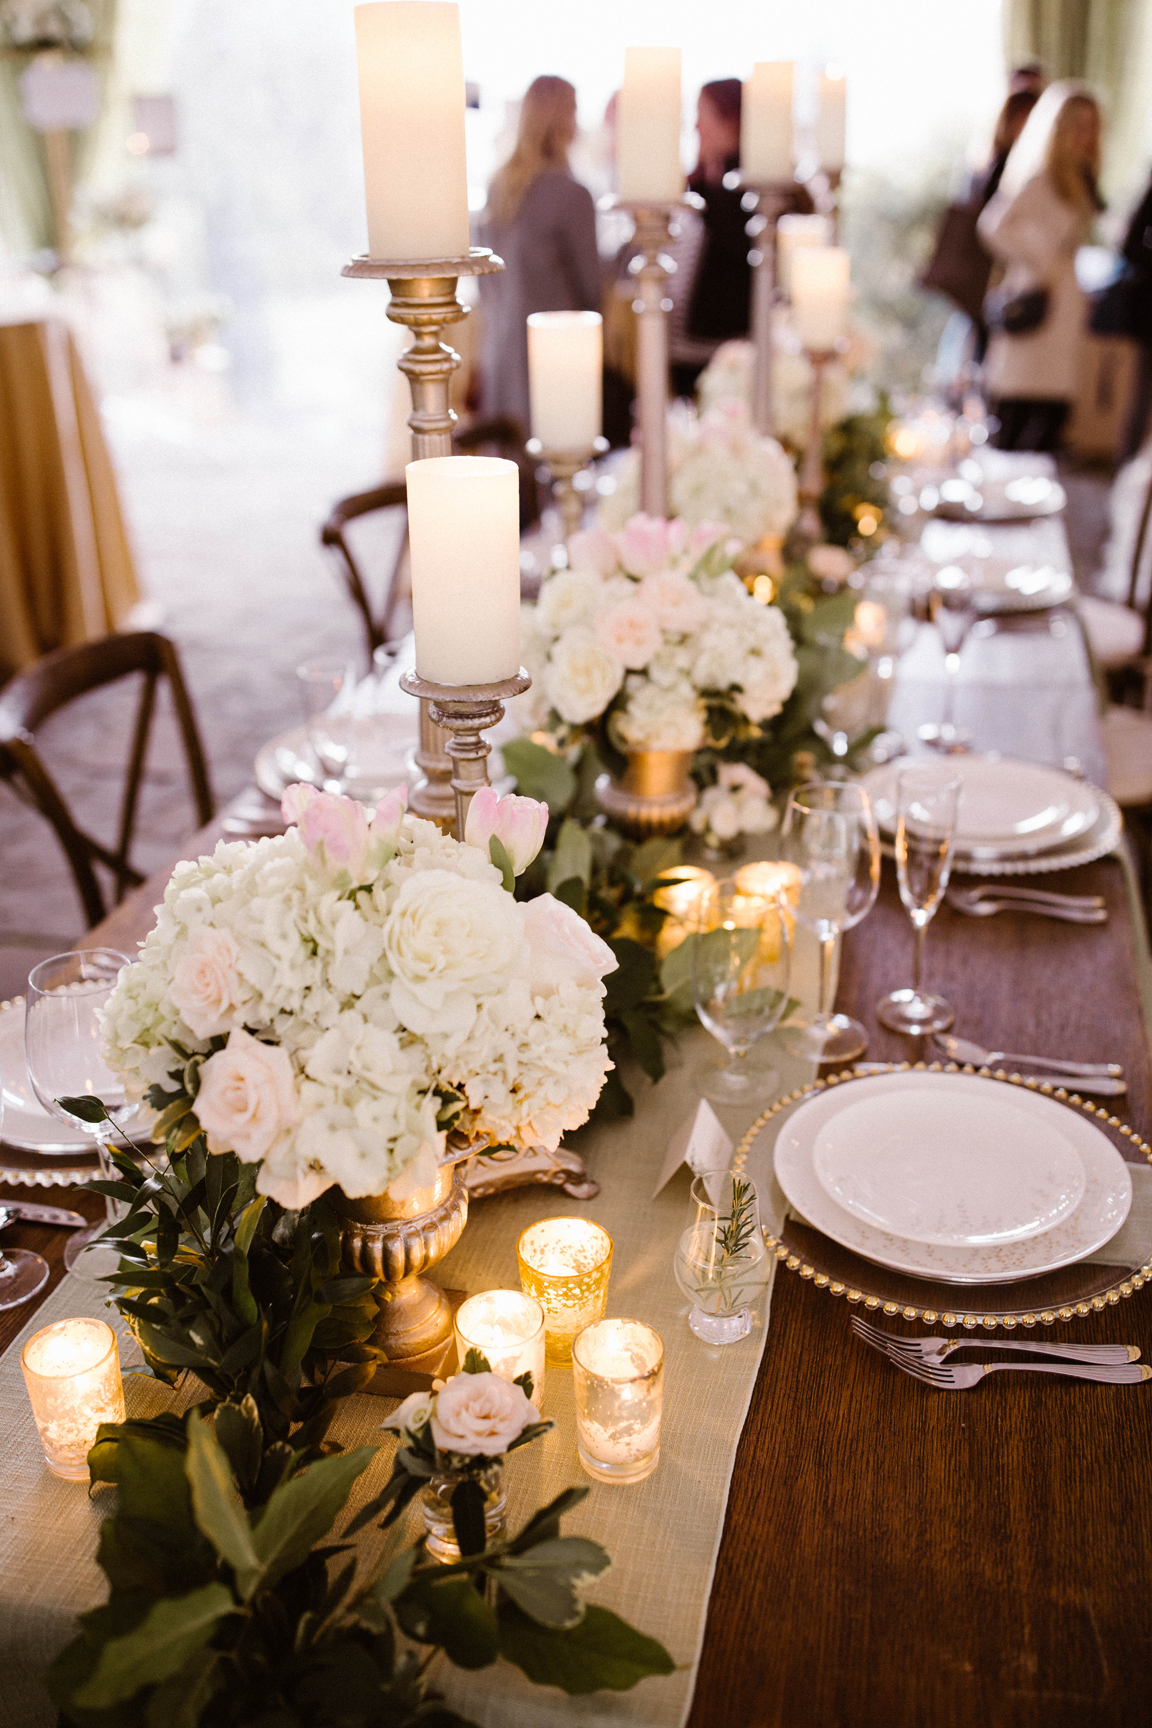 DeLille+Cellars_The+Chateau_Woodinville_2017_Weddings+In+Woodinville123.jpg